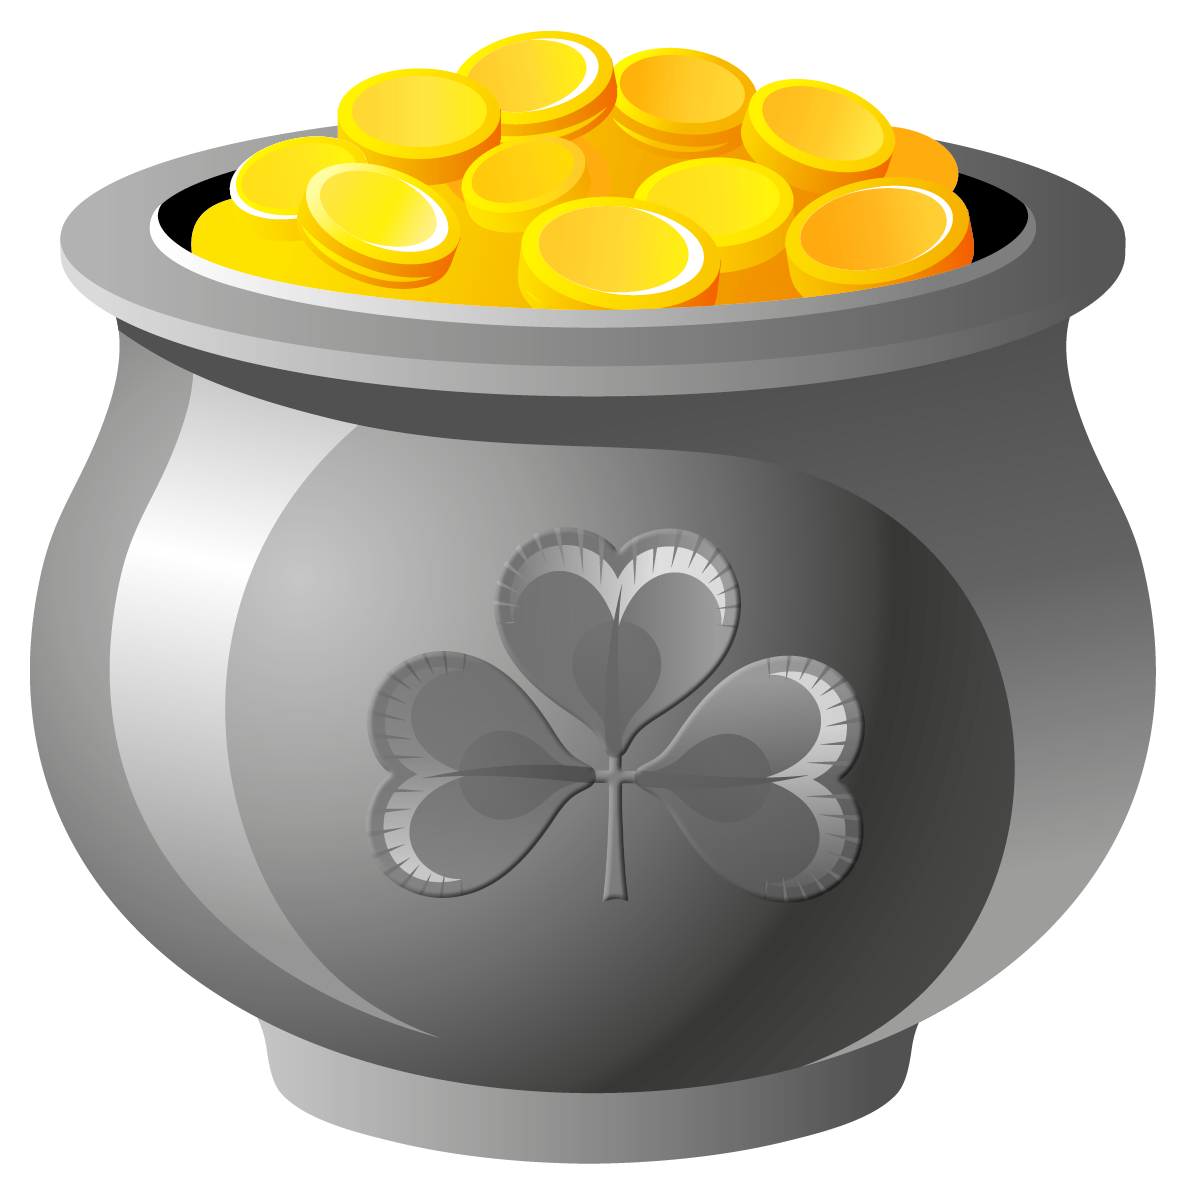 picture of a pot of gold clipart best